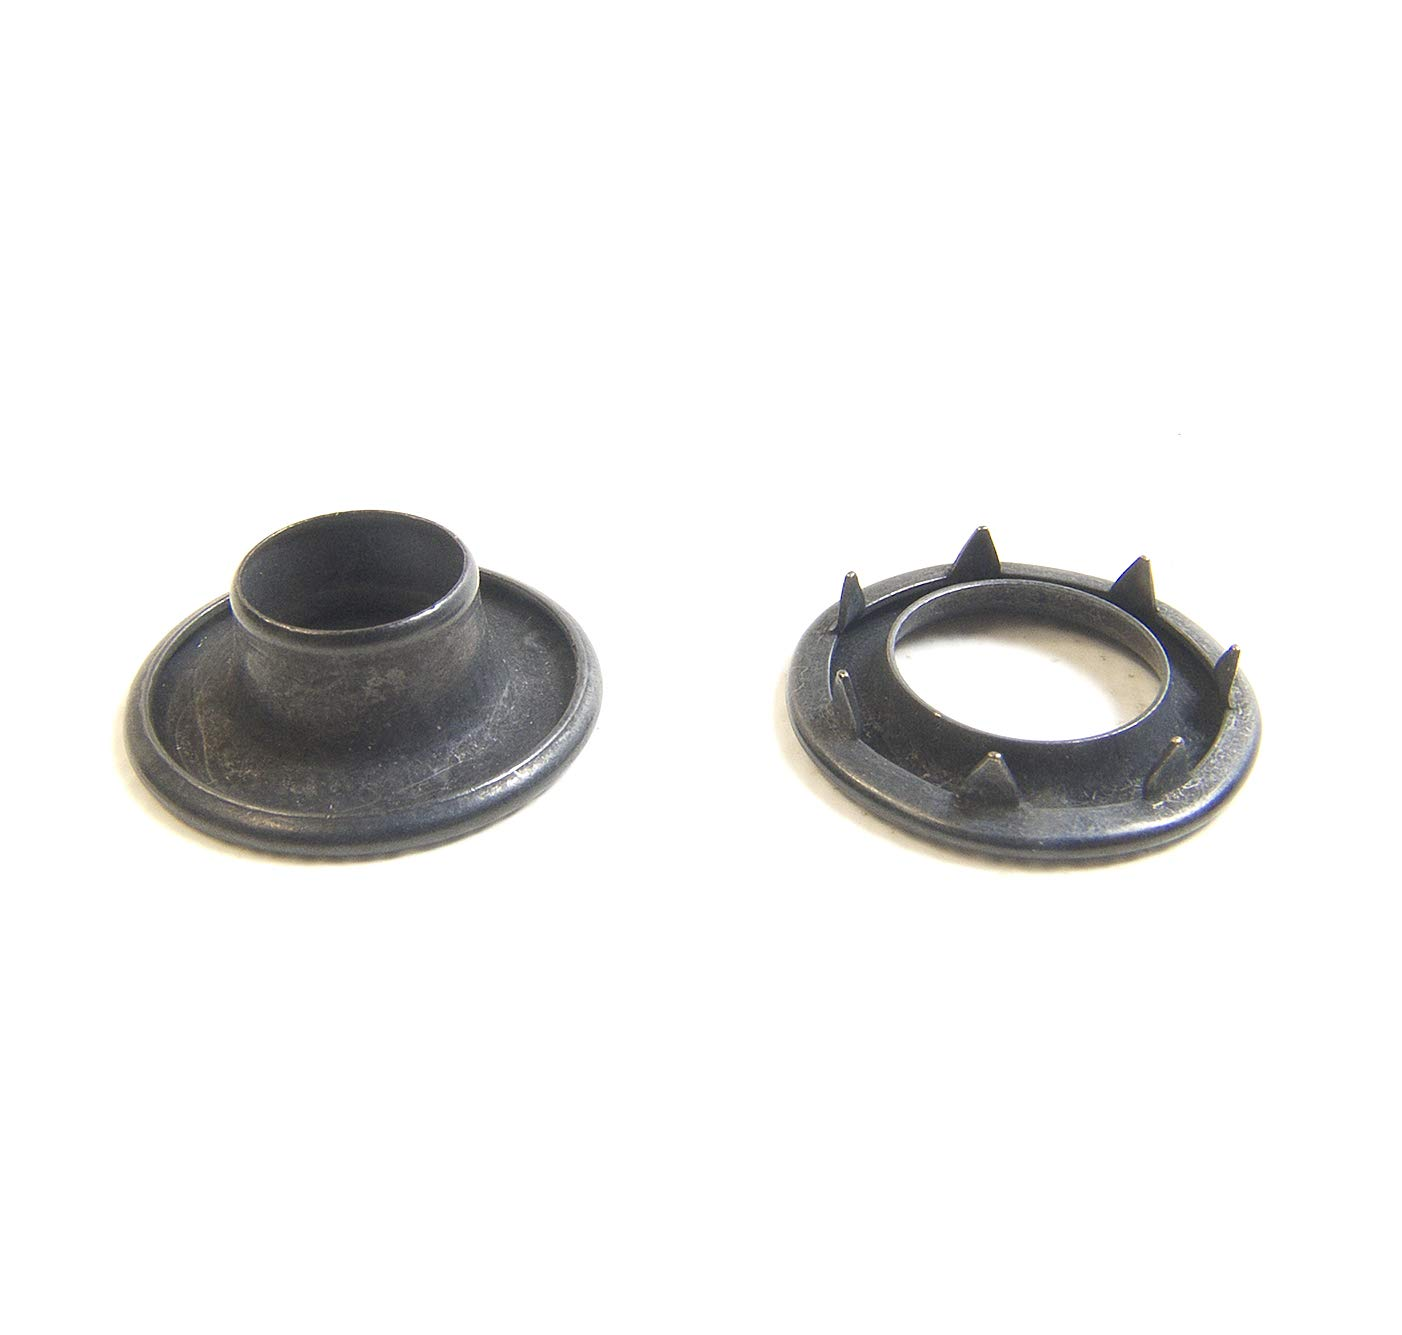 Grommets #3 Heavy Duty Rolled Rim Spur, Black Oxide Coated Brass, Select Quantity Needed (50 Piece Set)